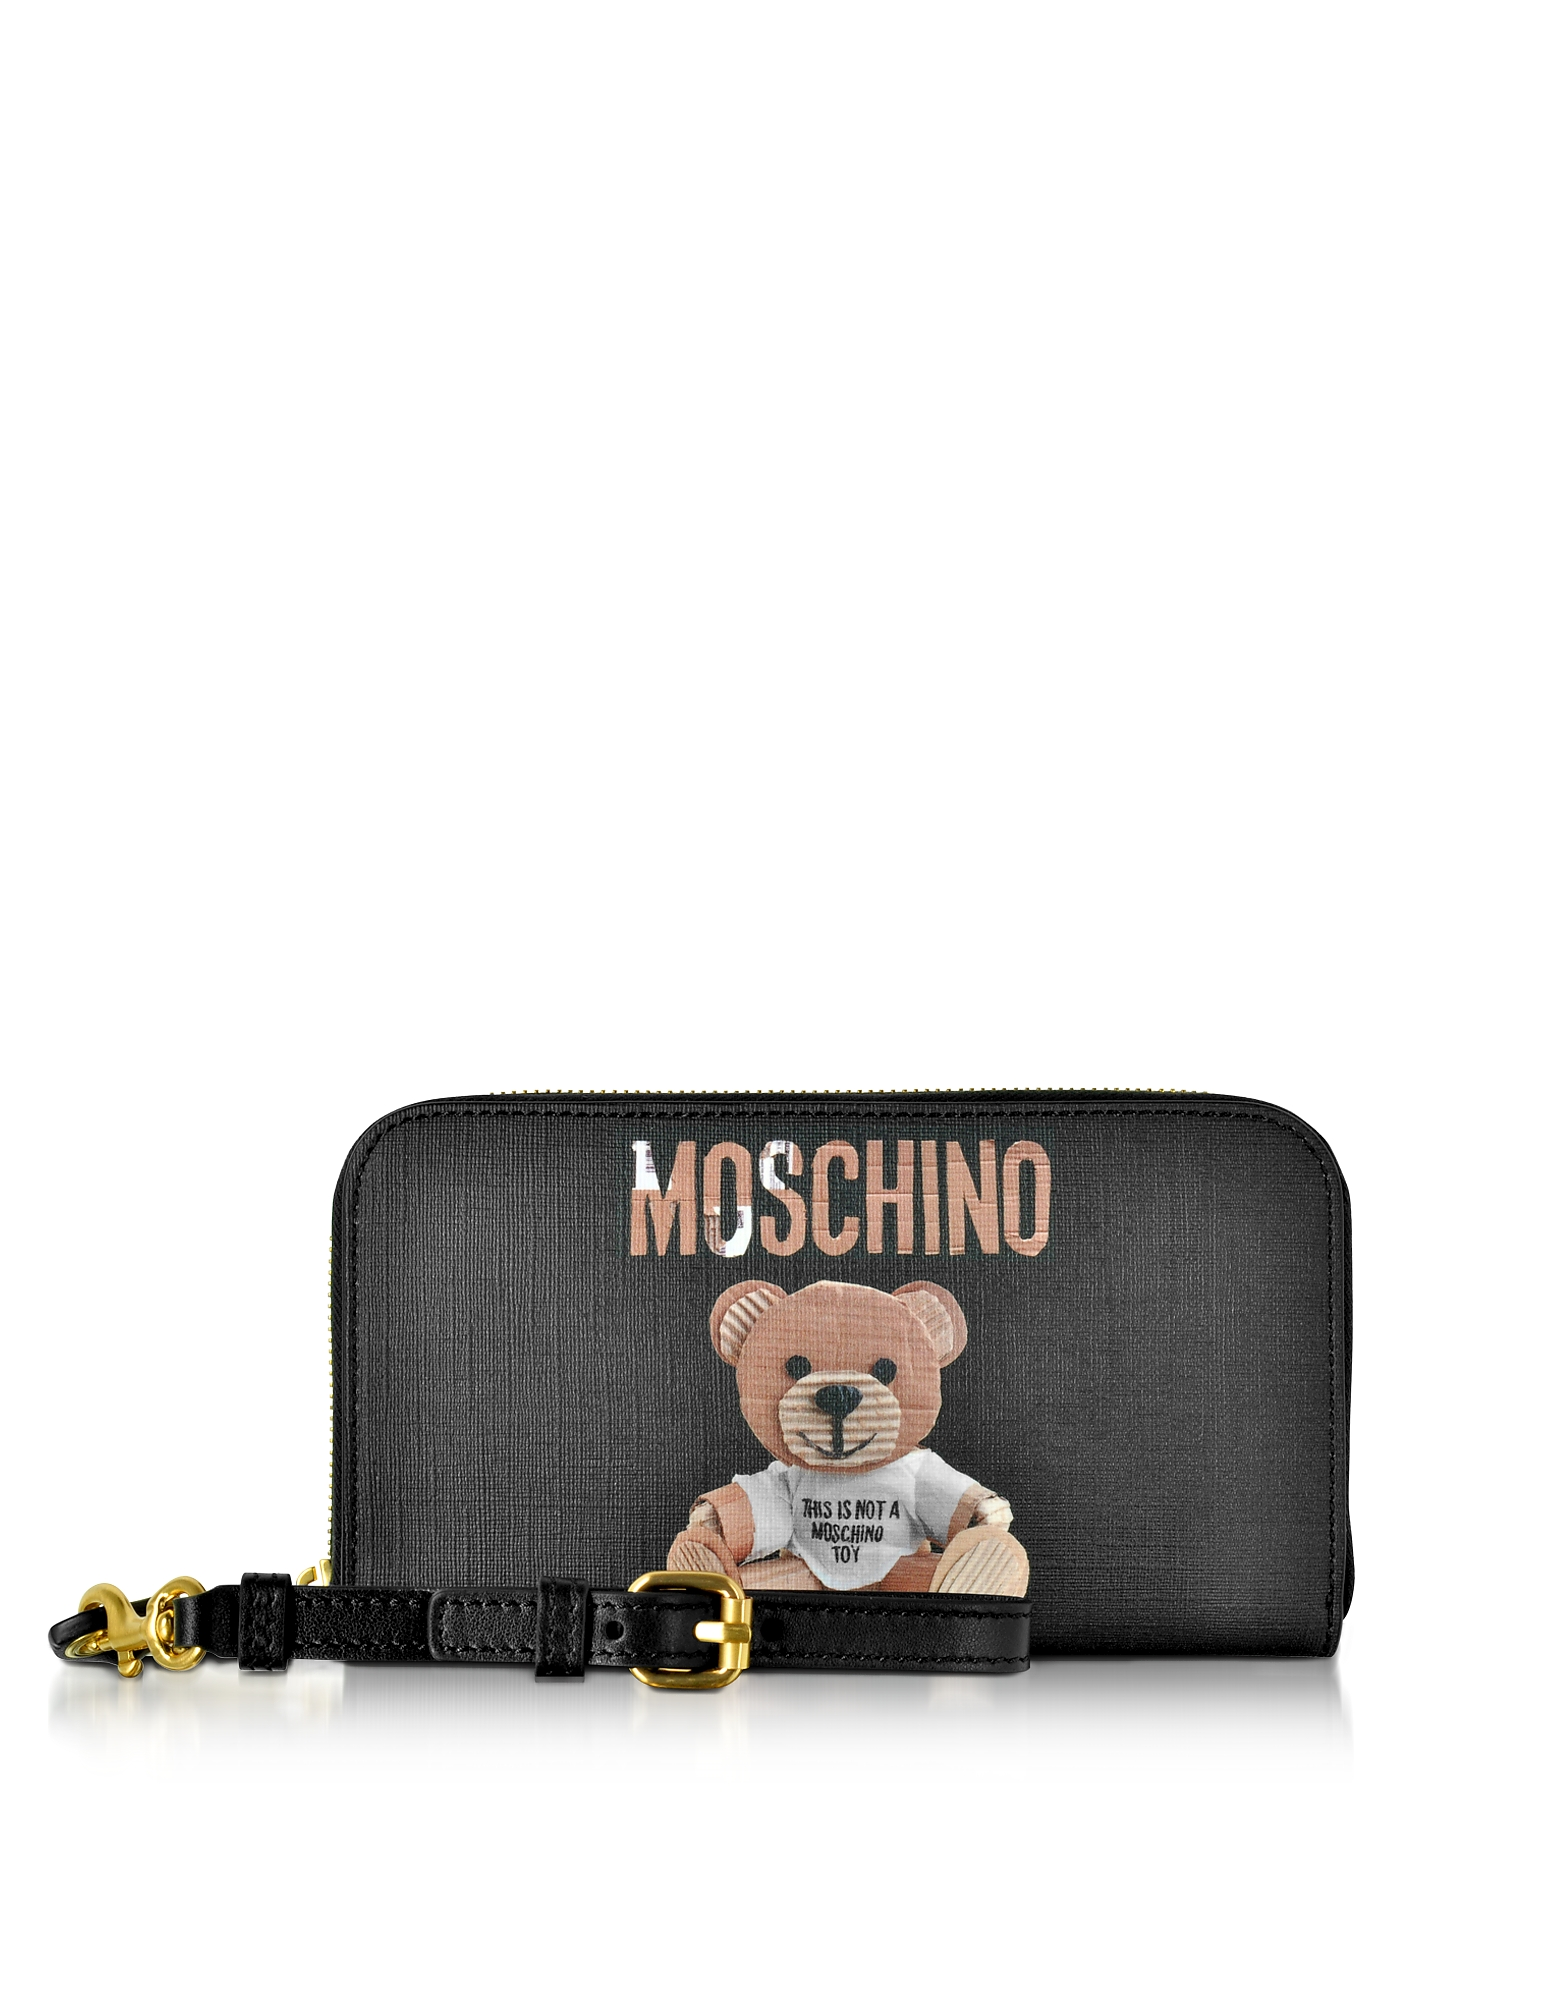 Moschino Handbags, Teddy Bear Saffiano Leather Wallet w/Detachable Wristlet